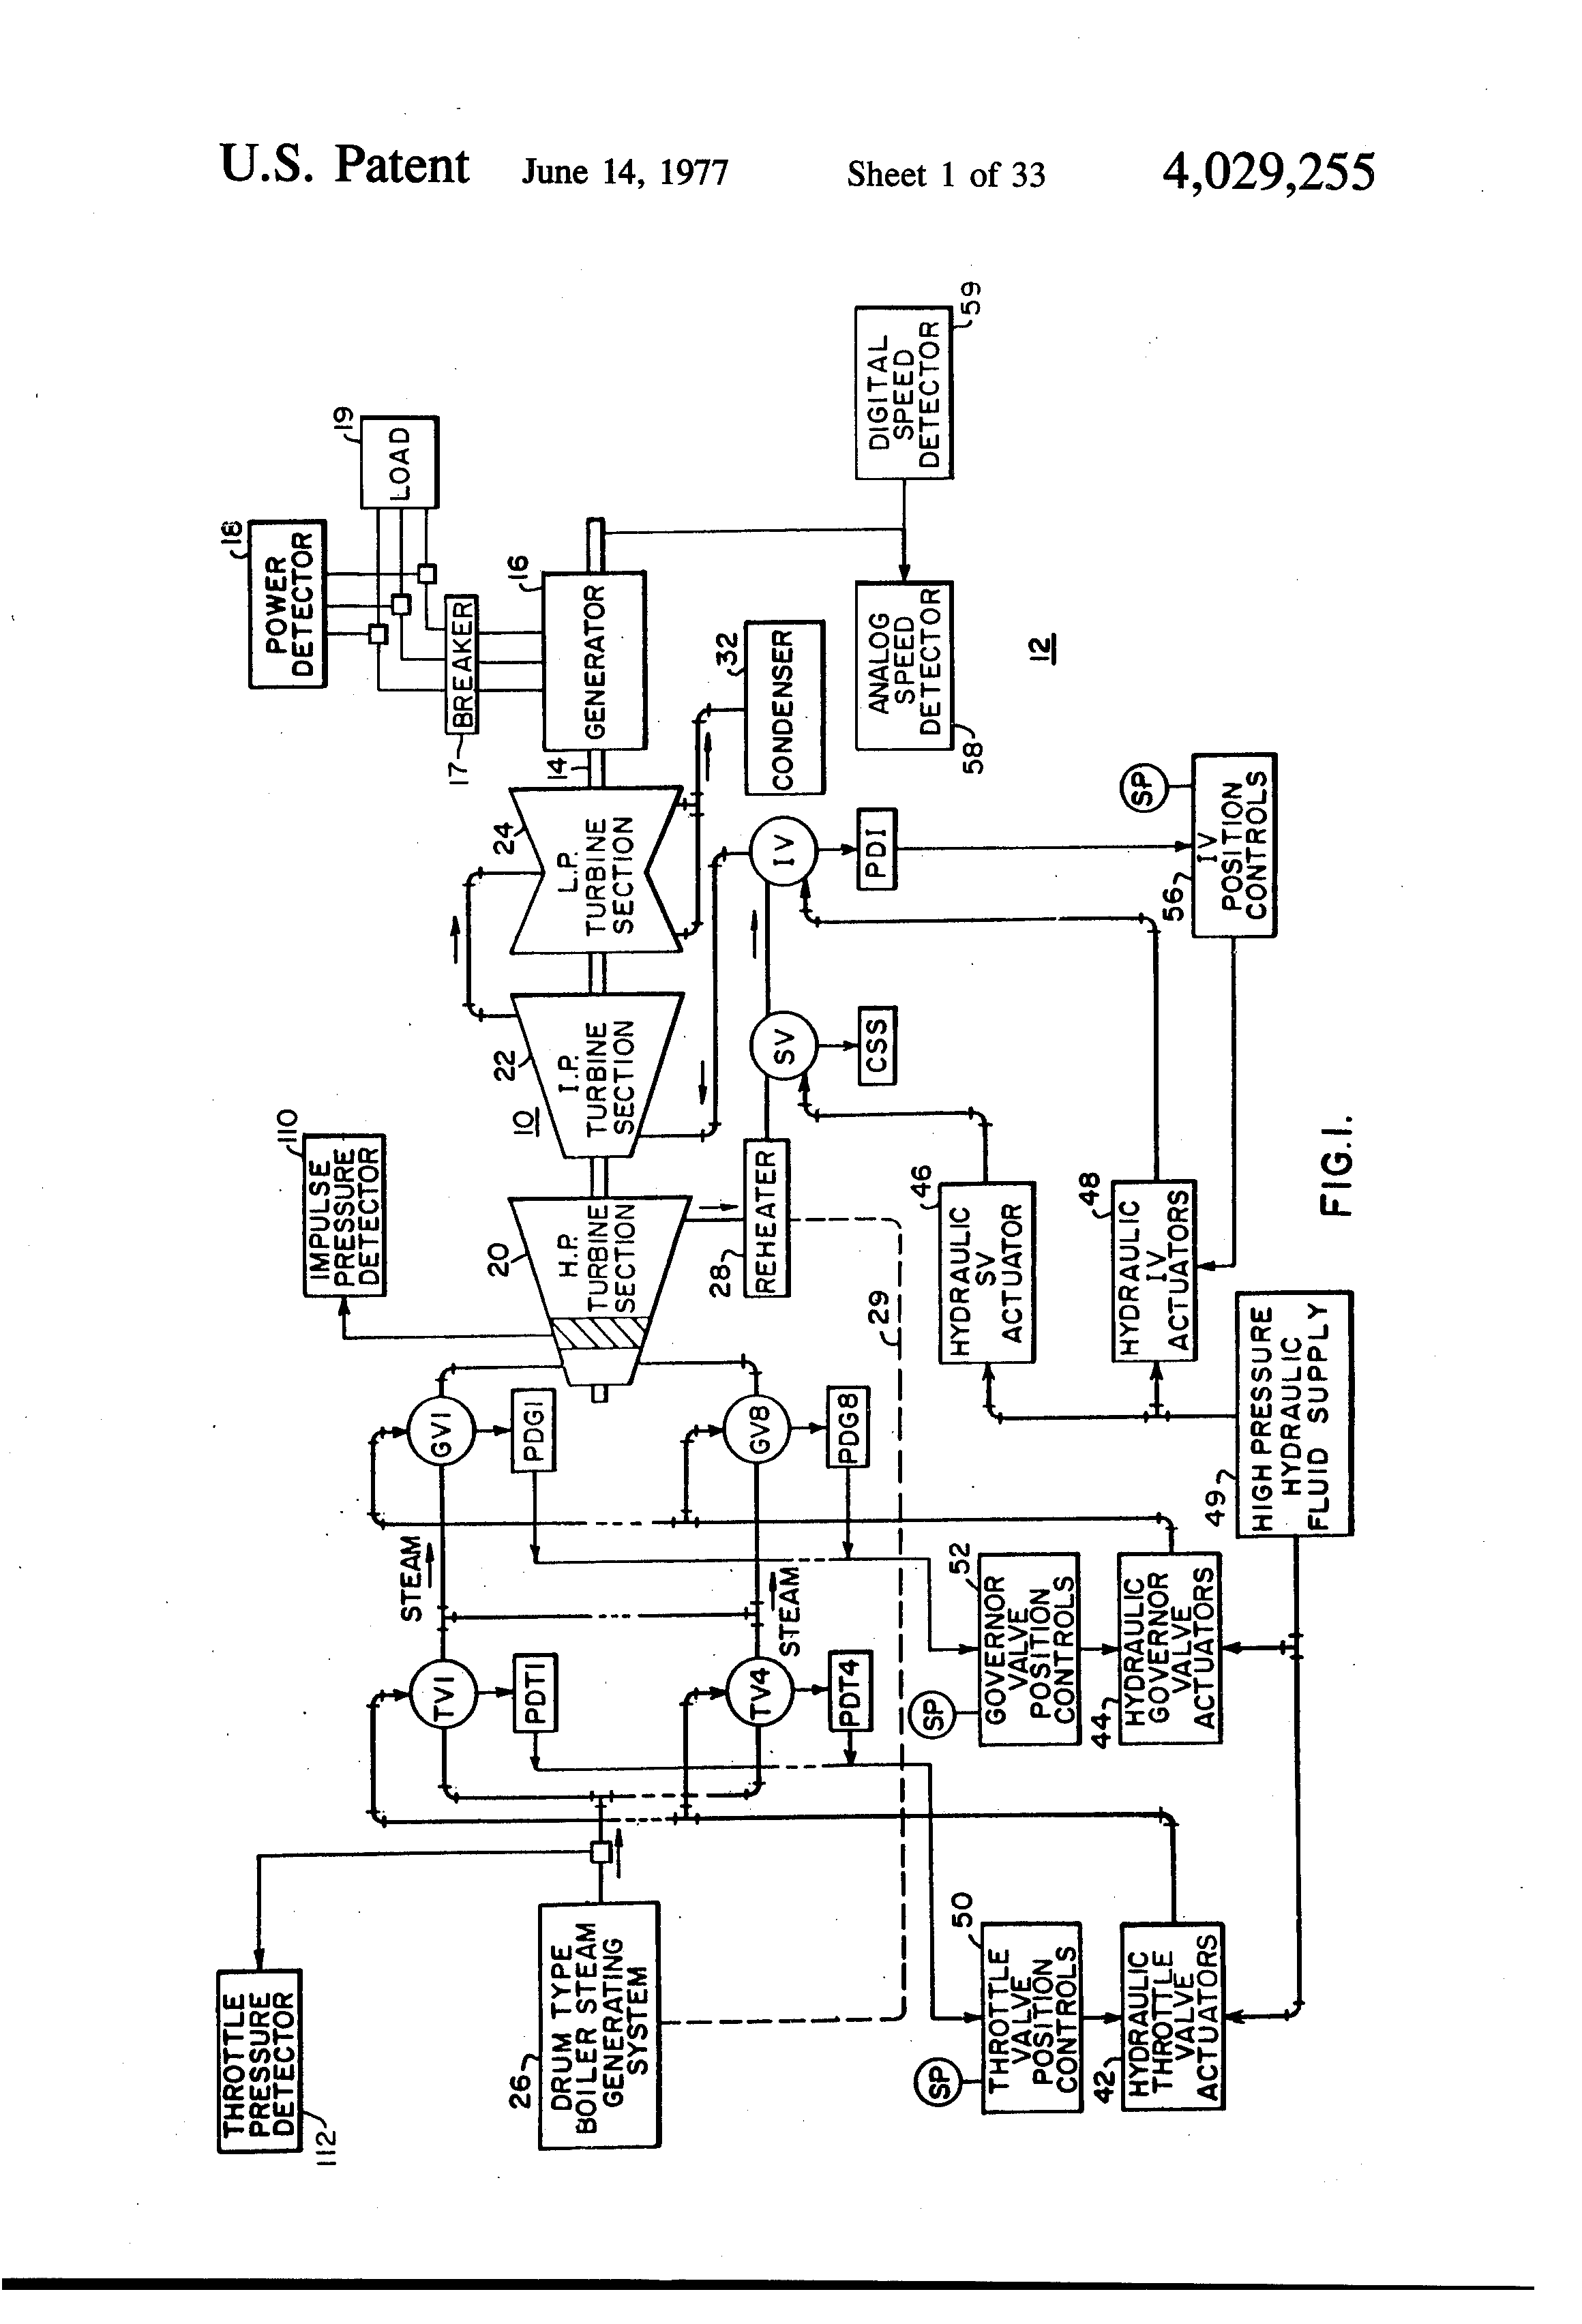 Patent US System for operating a steam turbine with